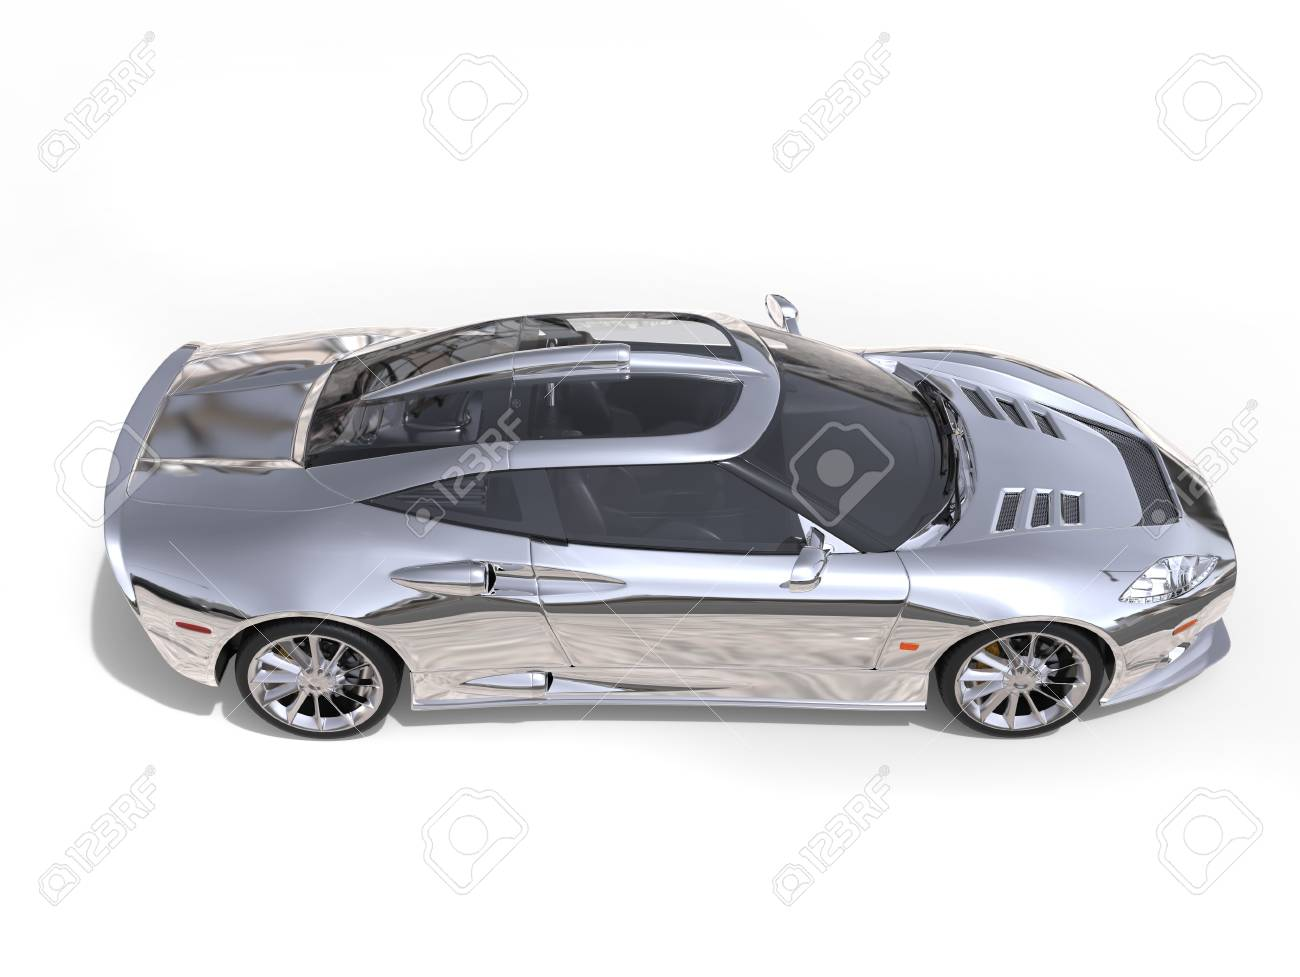 Amazing Shiny Silver Super Race Car Top Down Side View Stock Photo